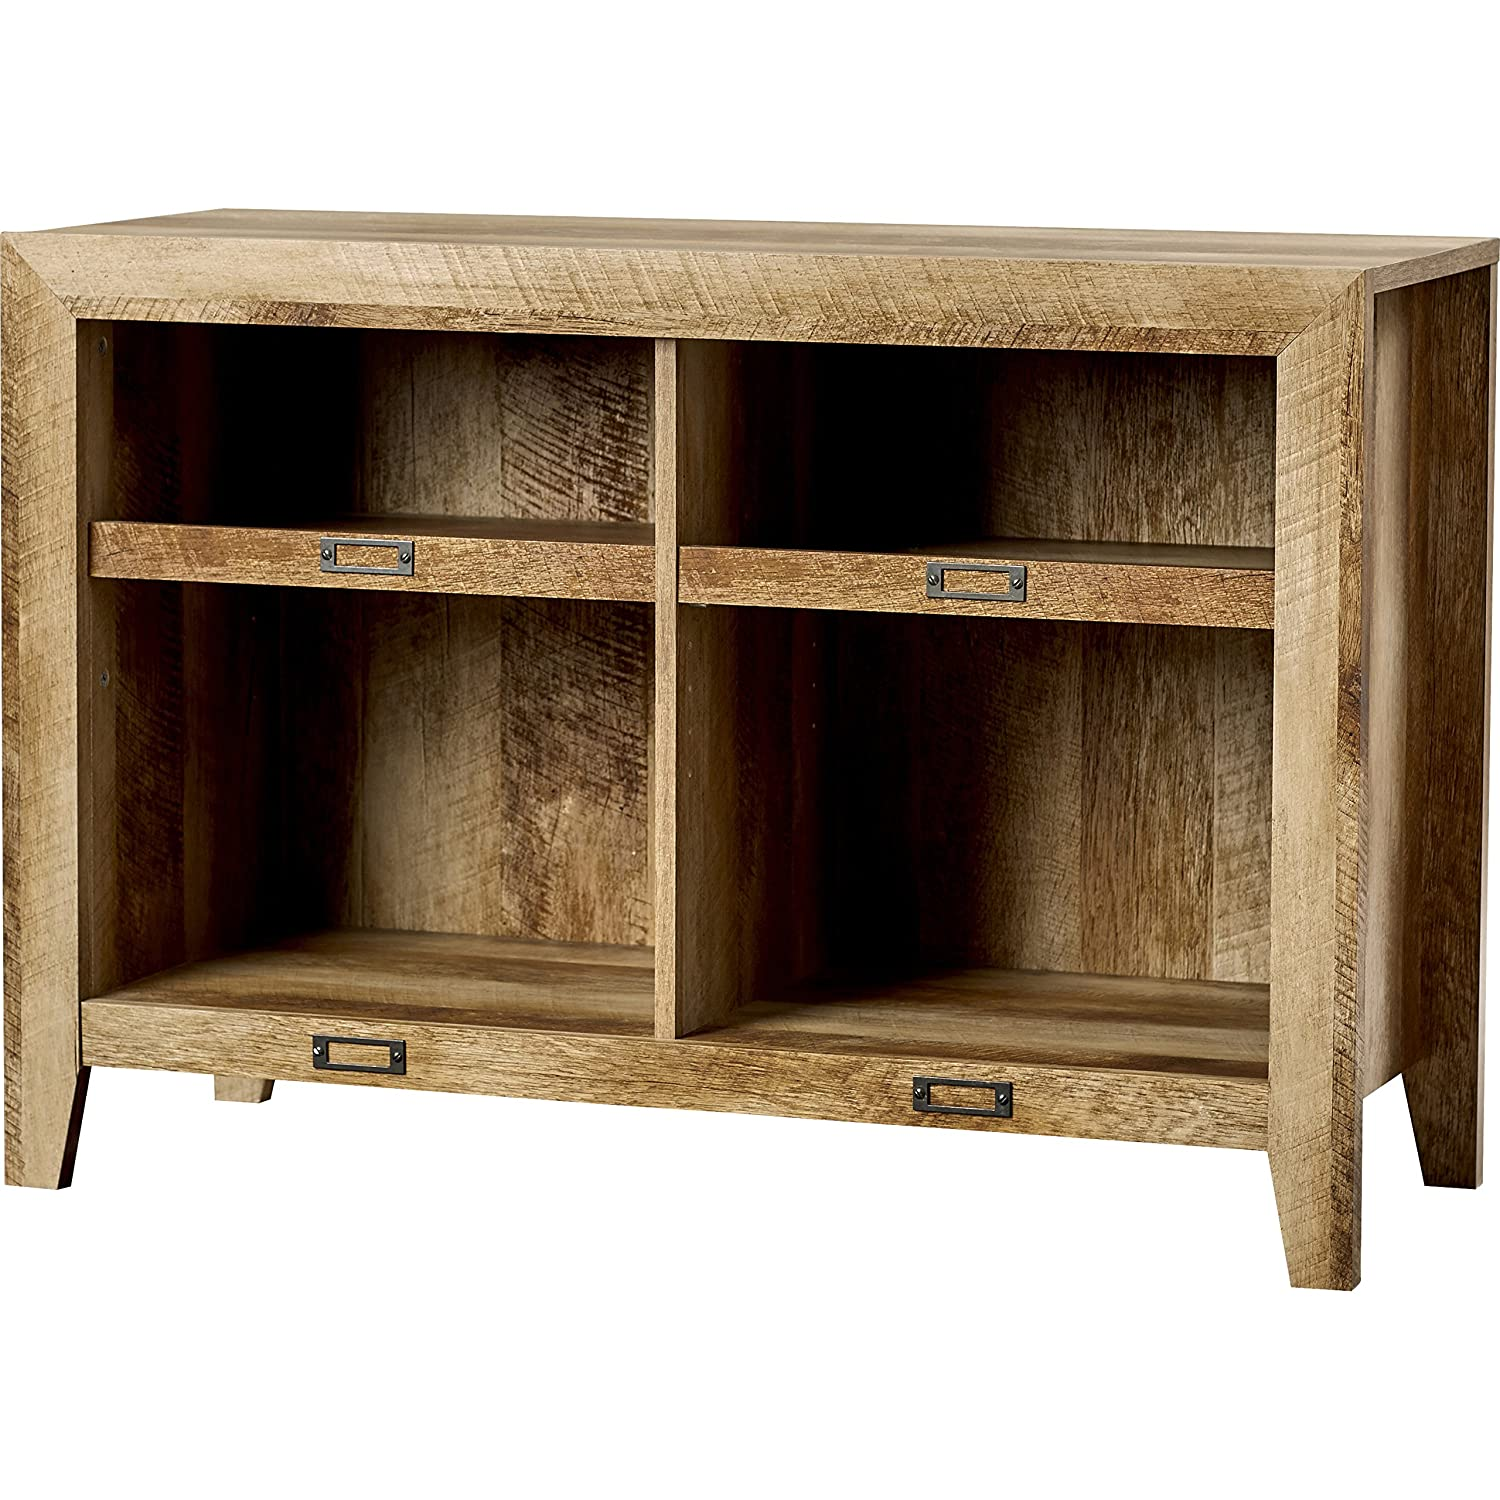 Amazon.com: Rustic Oak TV Stand Farmhouse Style for Your ...